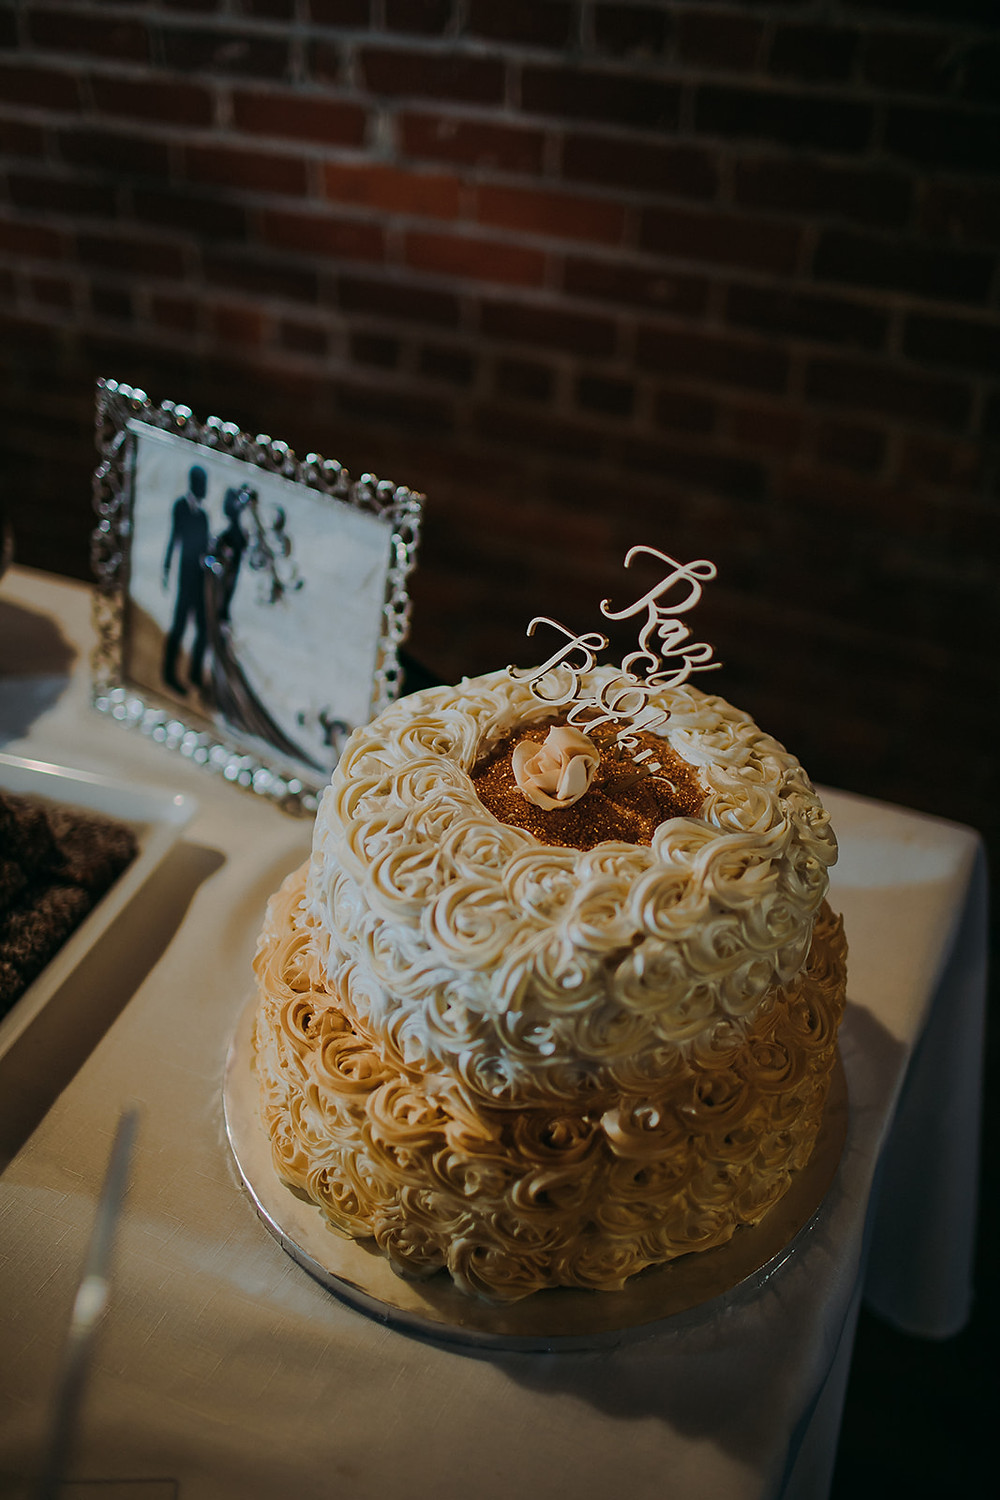 Handmade wedding cake with cream and gold rosettes